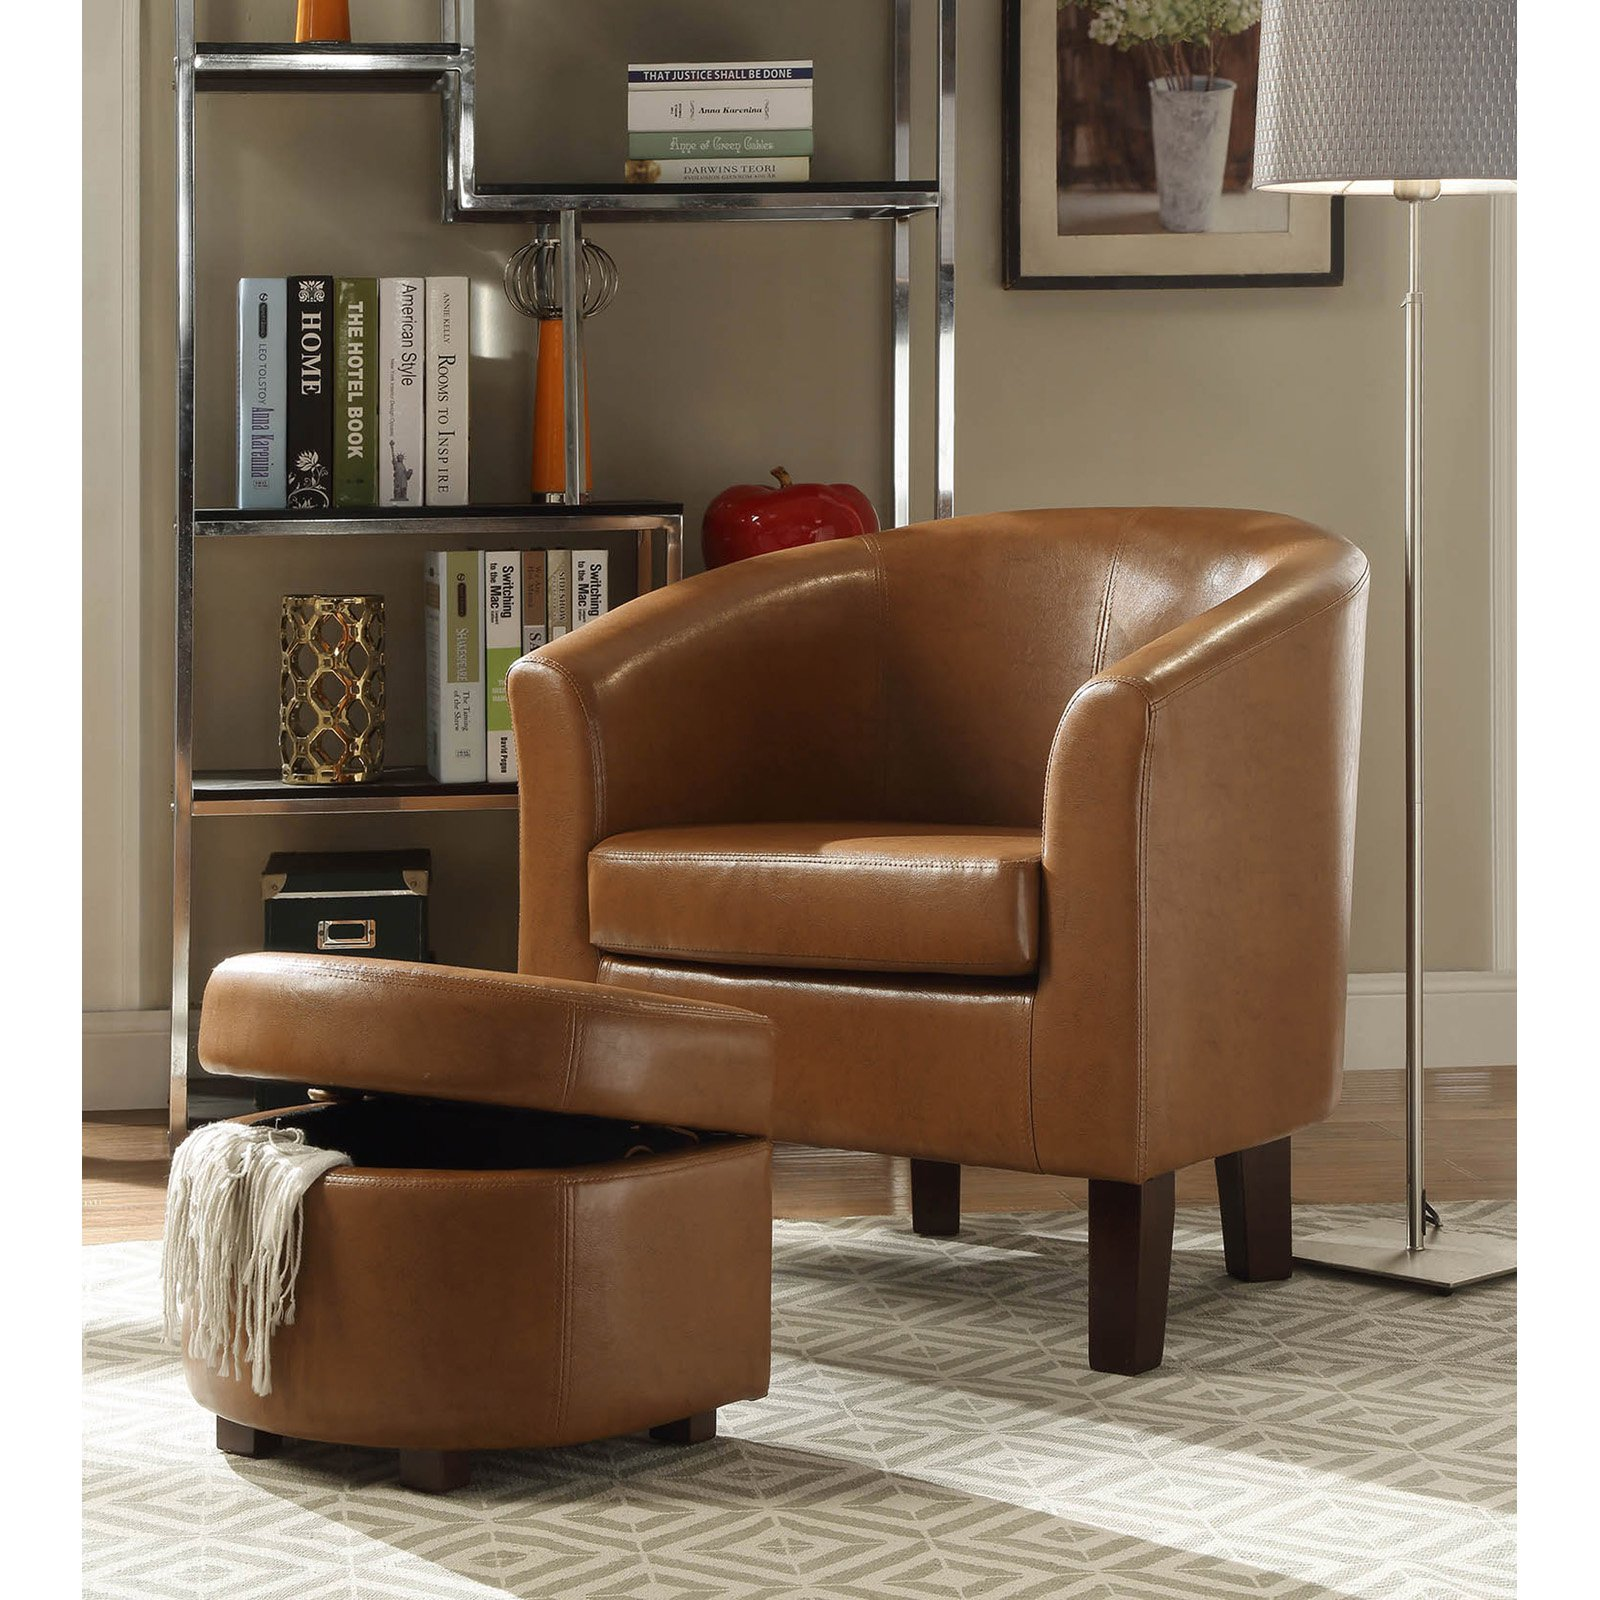 4D Concepts Laguna Club Chair with Storage Ottoman